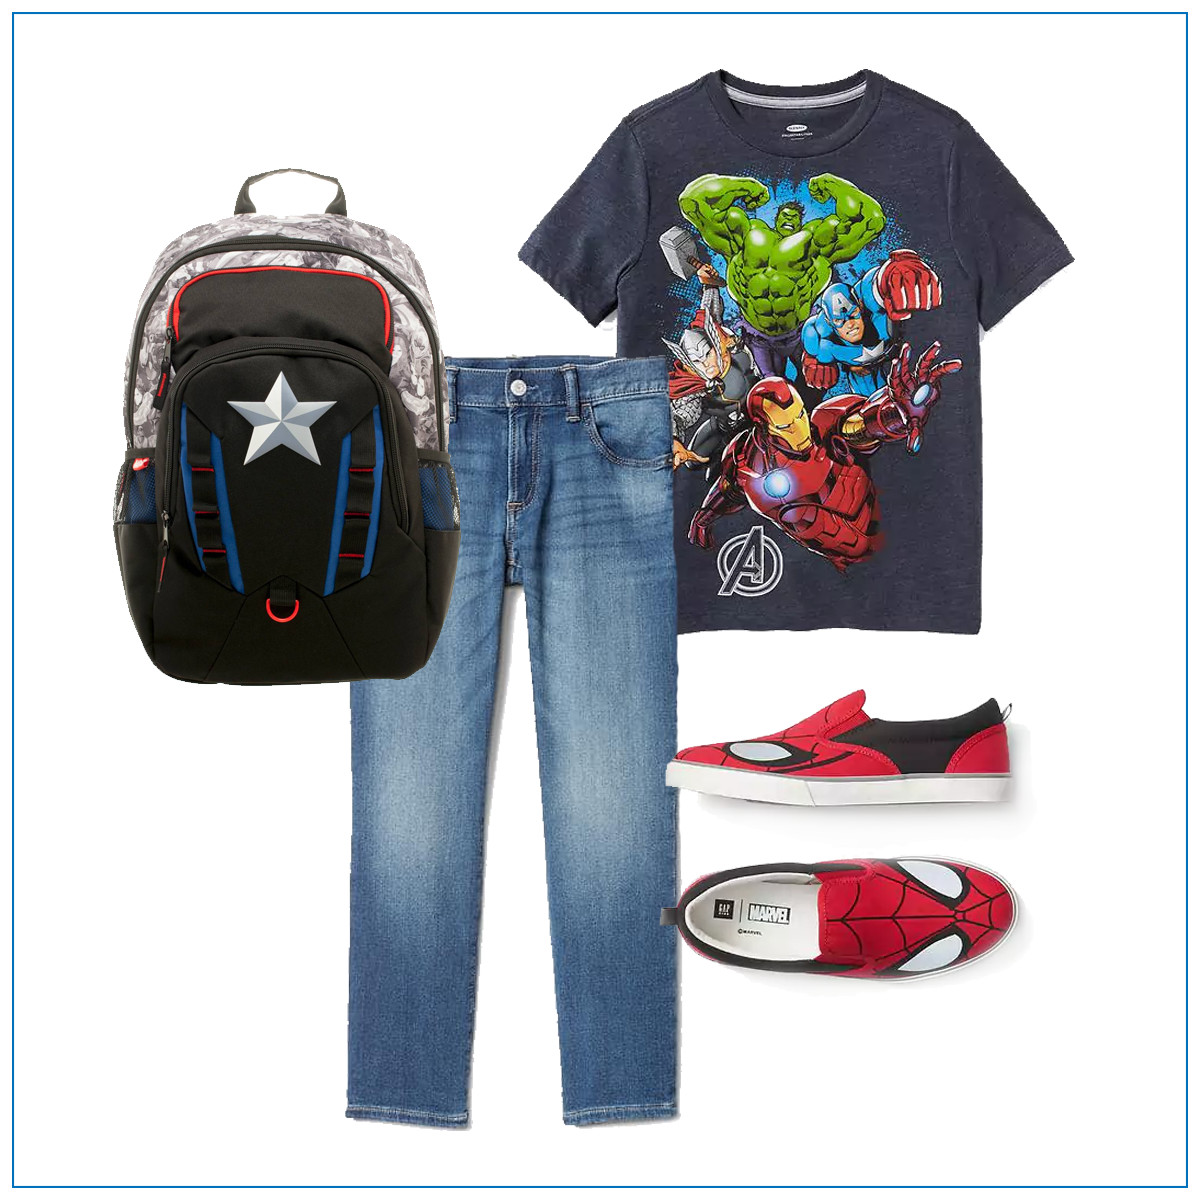 Jeans with a graphic t-shirt and Spiderman shoes